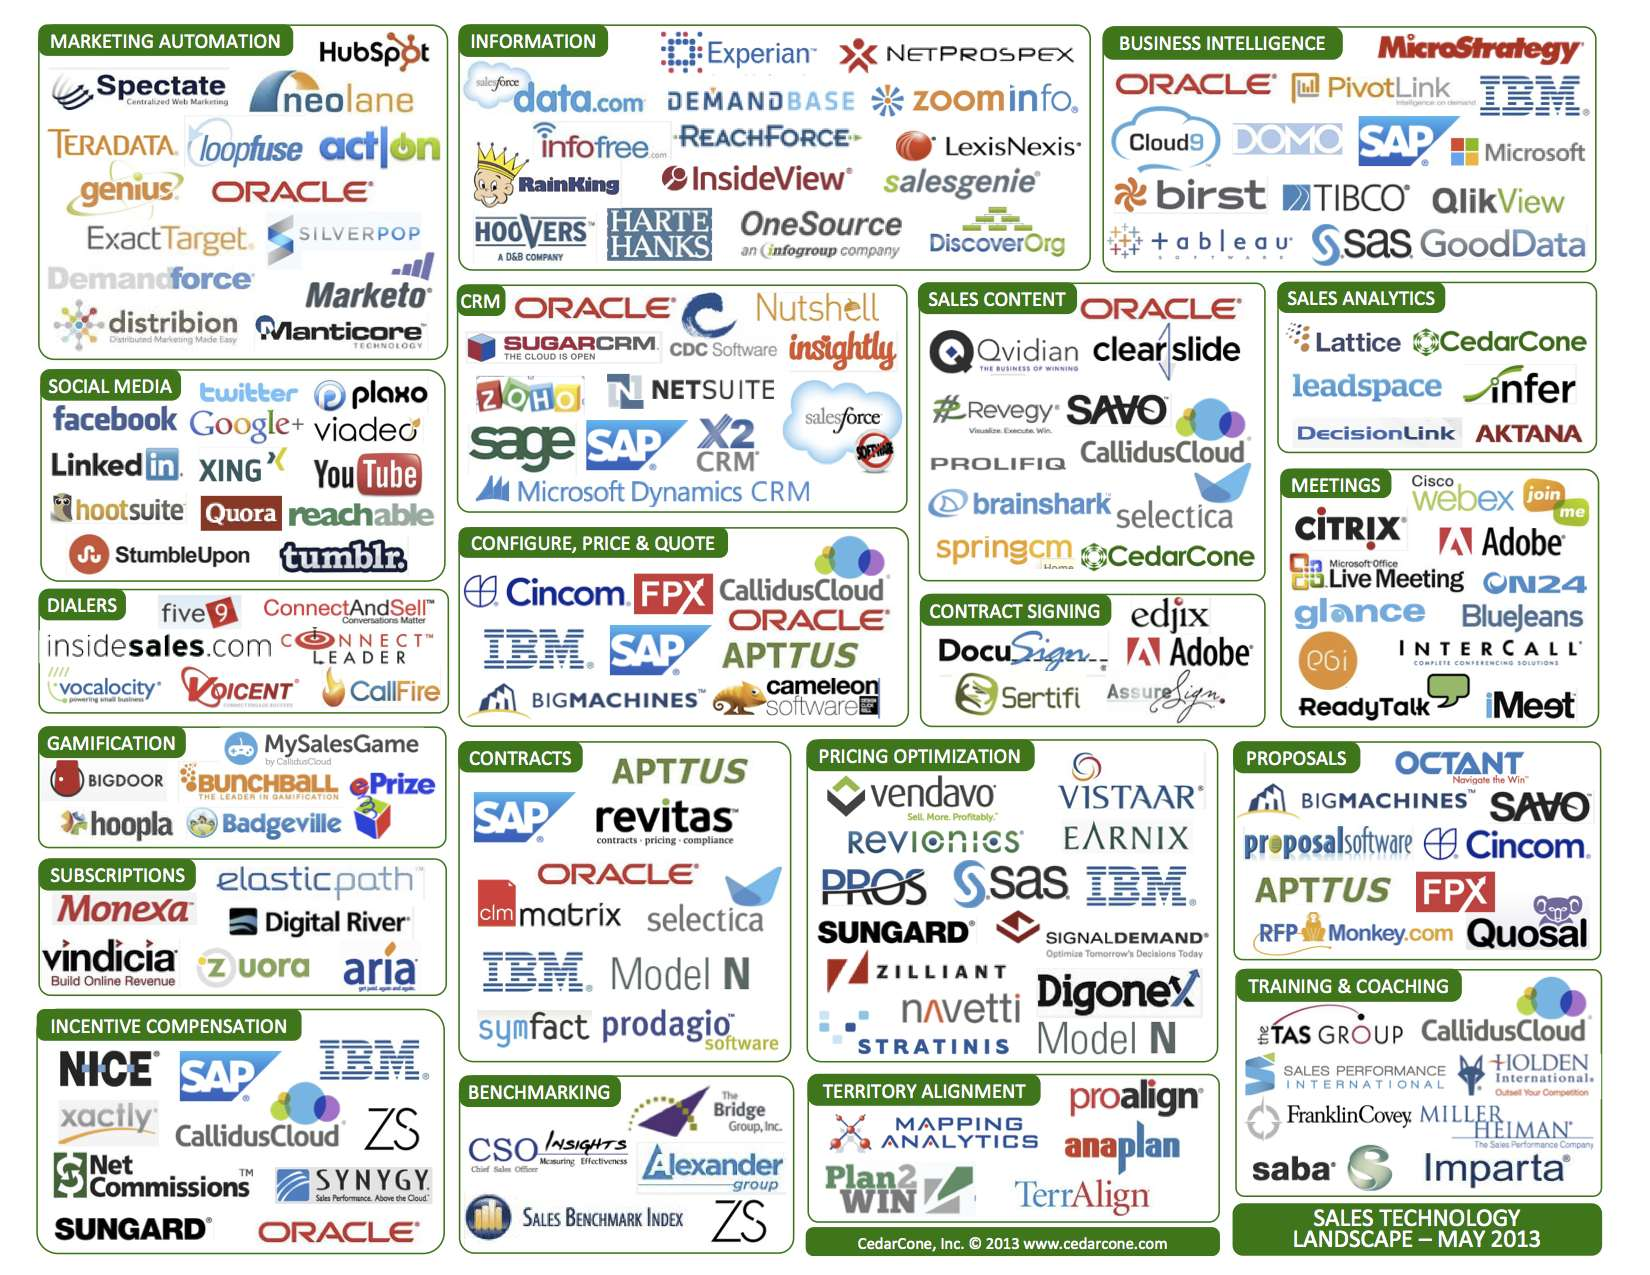 Sales technology landscape may 2013 acquistions for Advertising sales companies